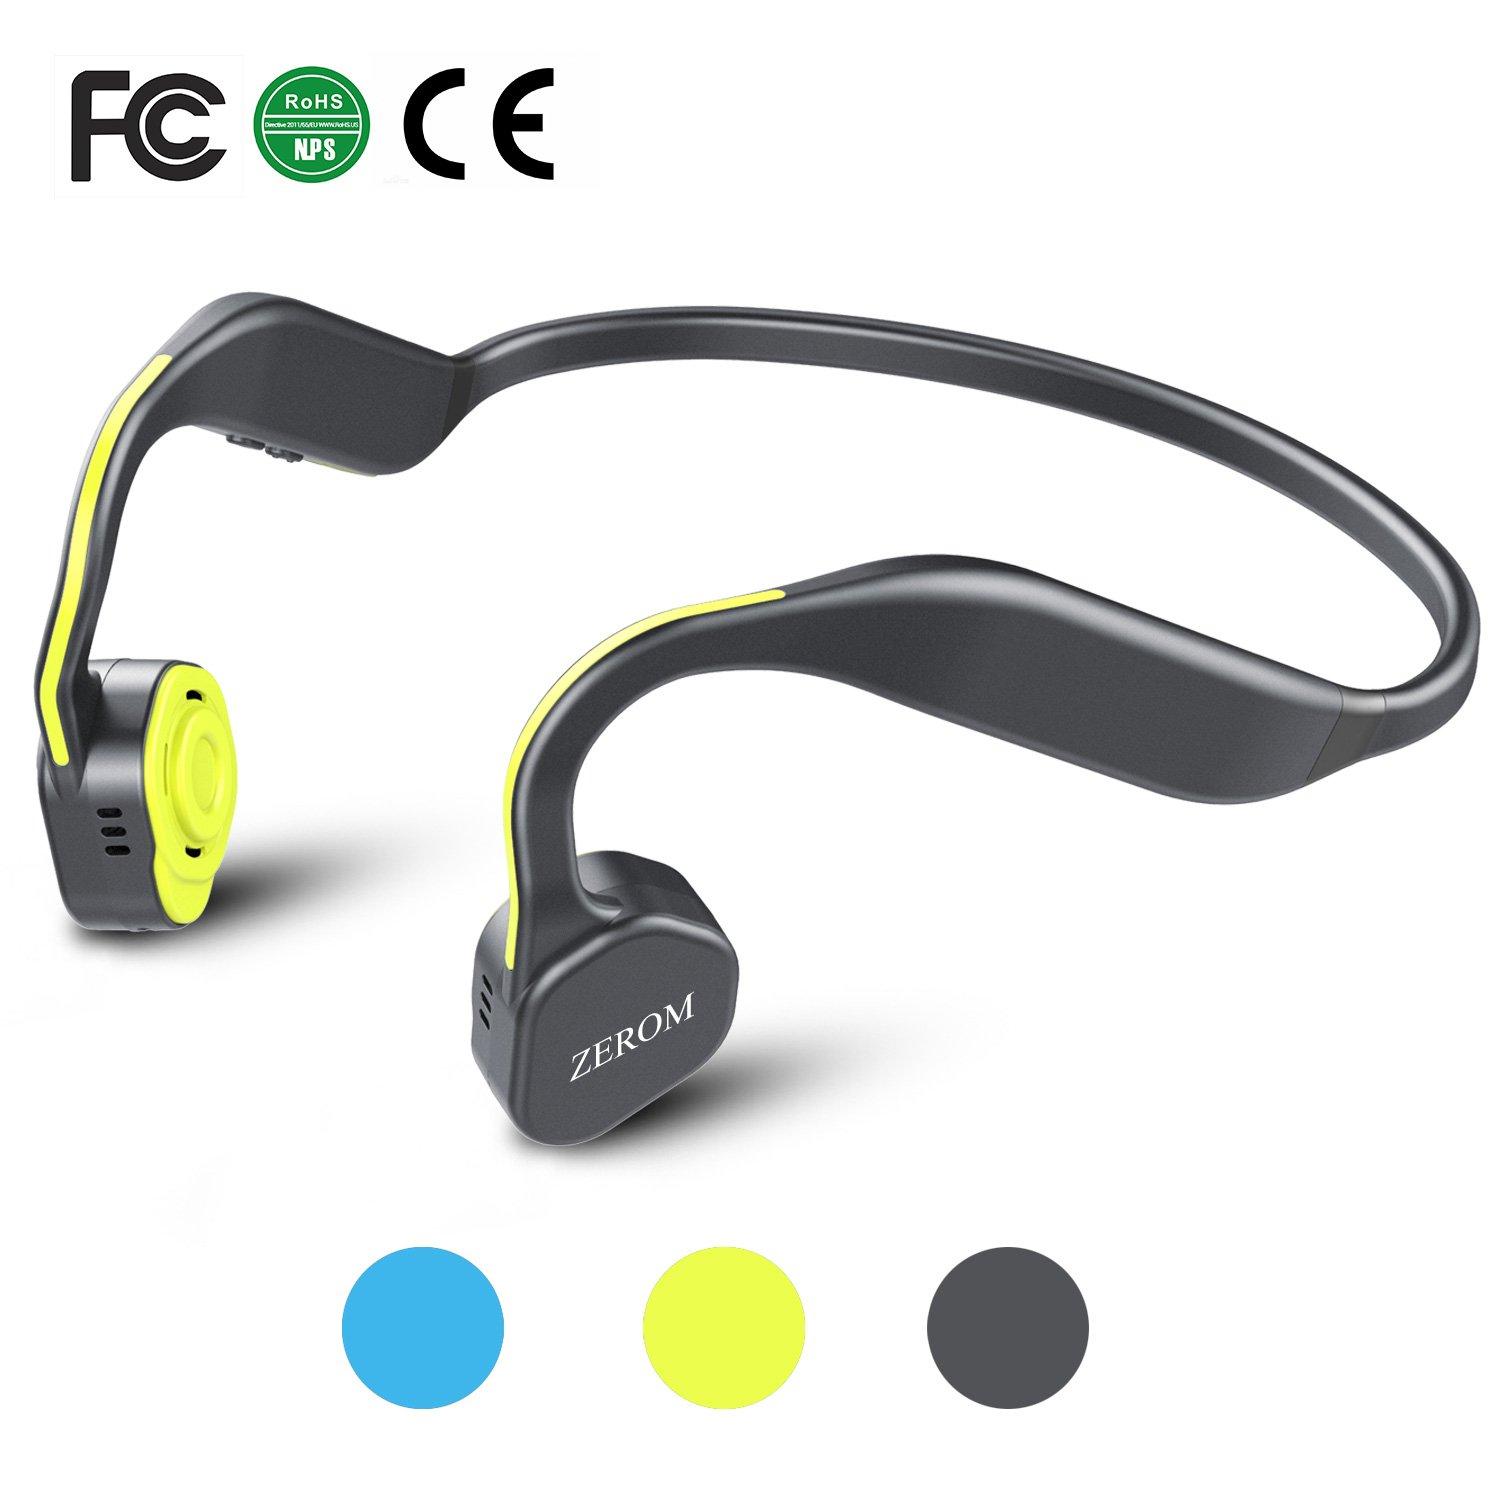 Bone Conduction Headphones Bluetooth Wireless Titanium HiFi Stereo Sports Headsets with Mic for Running Driving Cycling IP55 Waterproof Open Ear compatible with iphone Android Bright Yellow